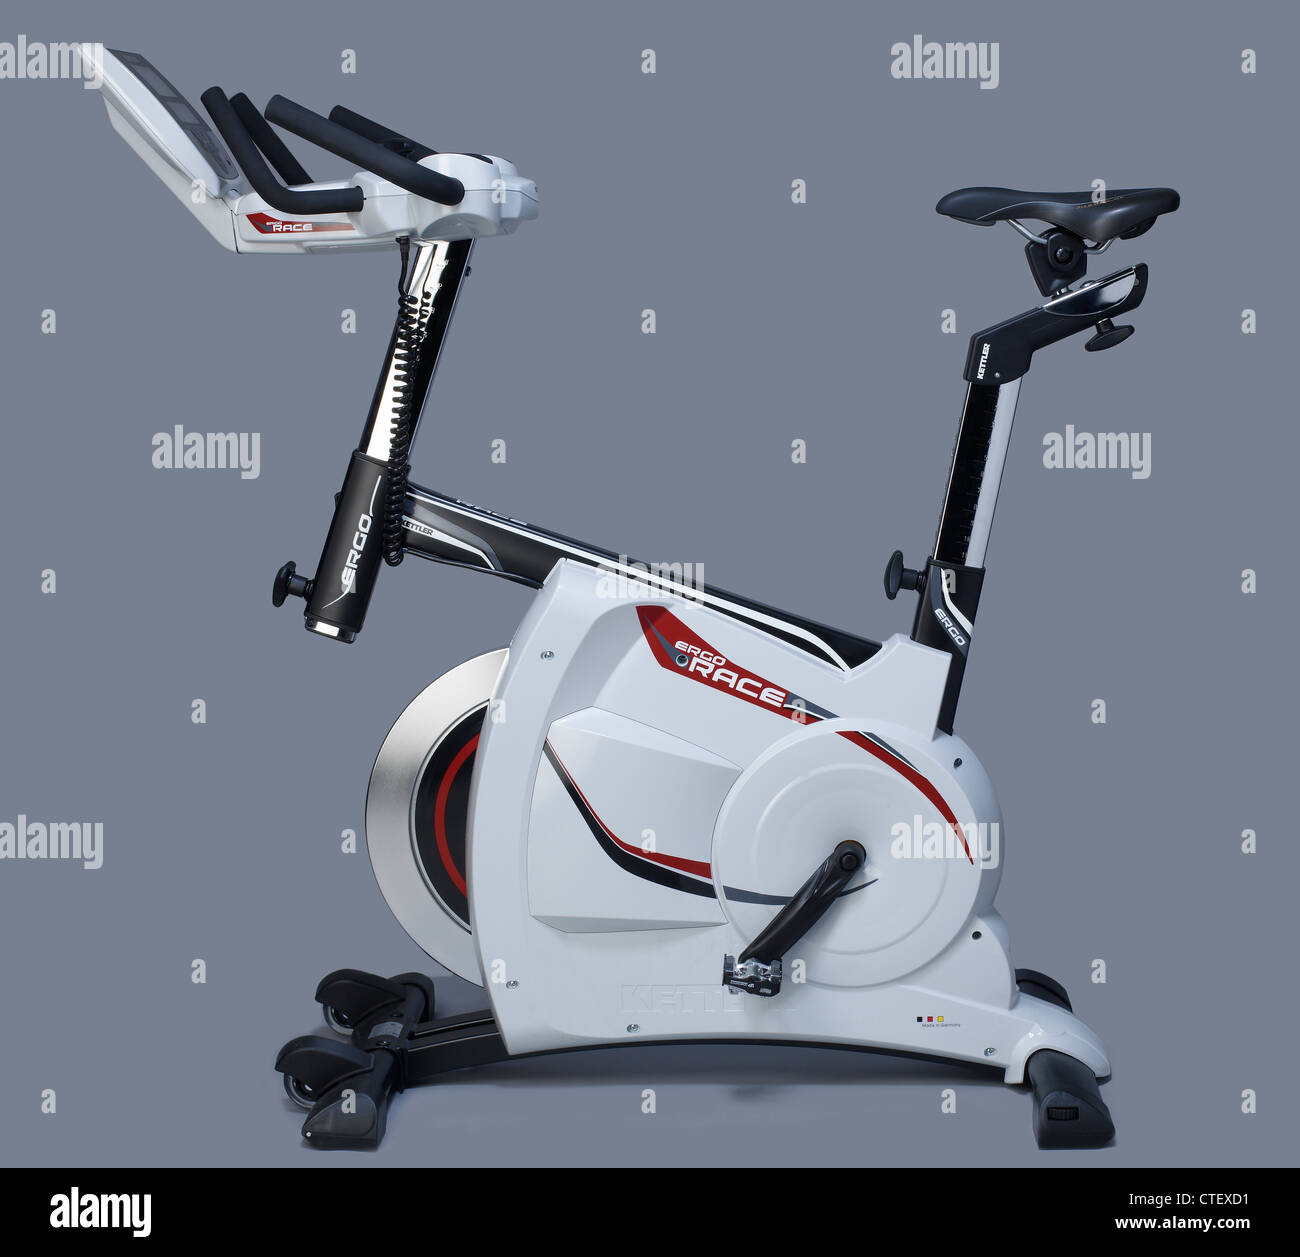 Kettler Fitness Exercise Bicycle Machine Ergo Race By Kettler Stock Photo